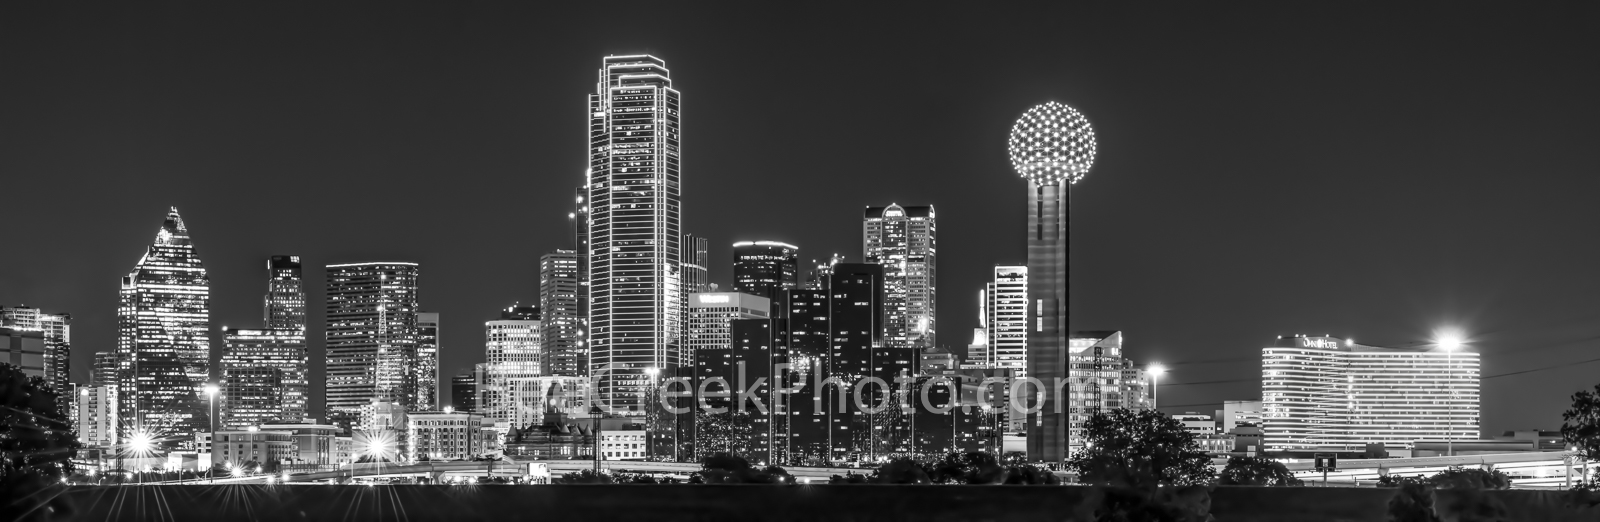 Skyline of Dallas Pano, night, black and white, b w, Dallas skyline, skylines, cityscape, cityscapes, city, downtown, citie, Reuion Tower, Heritage Plaza, Fountain Place, Bank of America, Omni Hotel, , photo